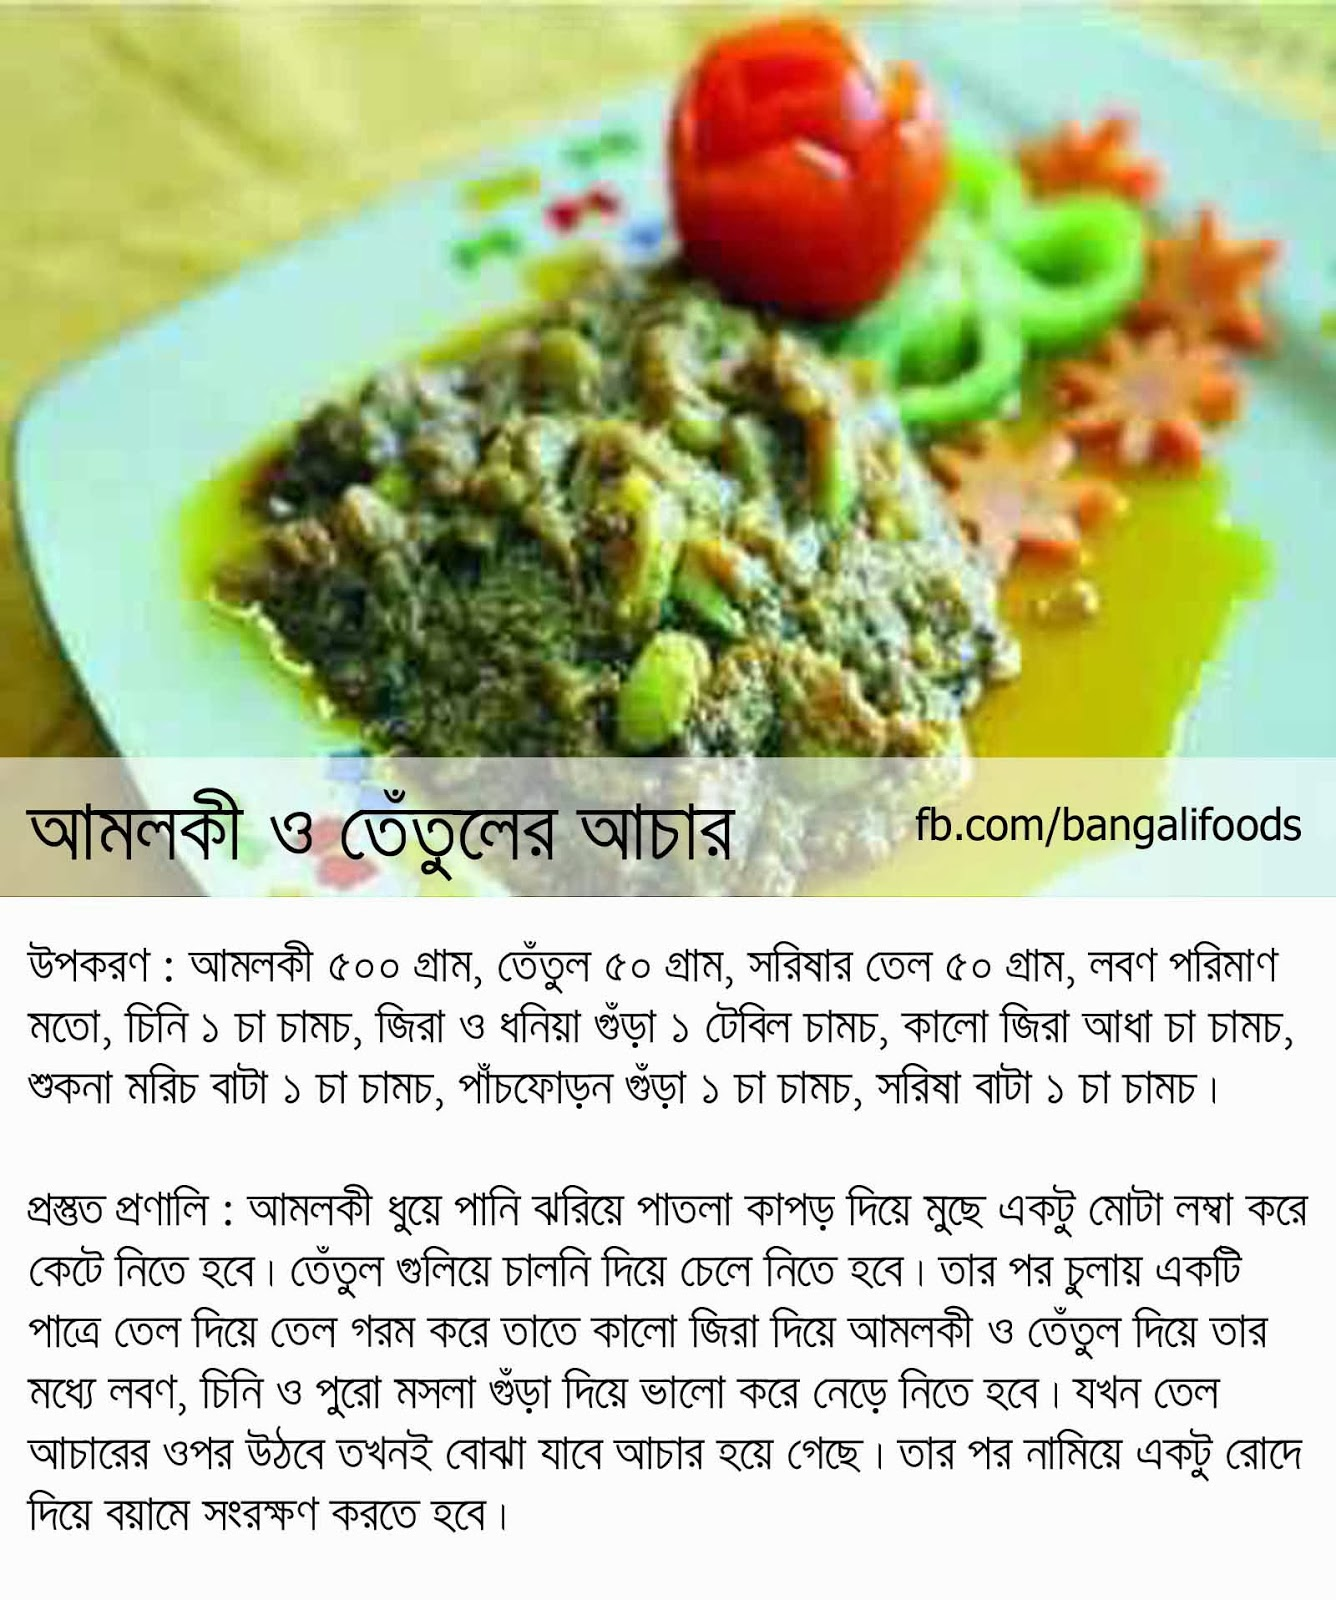 Bangali foods yummy pickles recipe in bangla amlokir o tetuler achar amloki pickles forumfinder Gallery